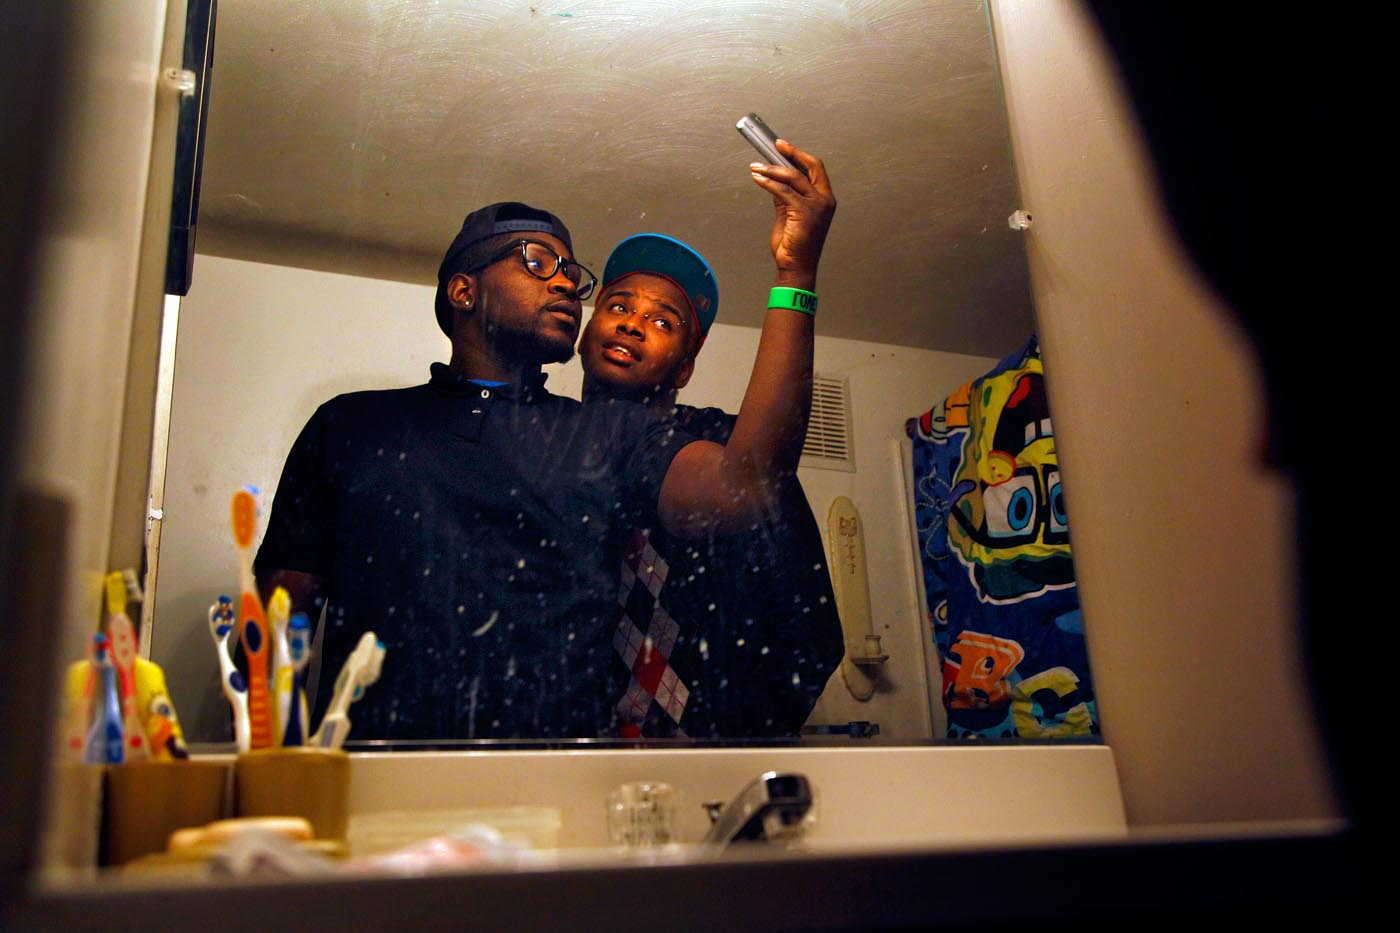 Teddy and his best friend Jamesie Johnson take self-portraits for Facebook in Jamesie's bathroom.